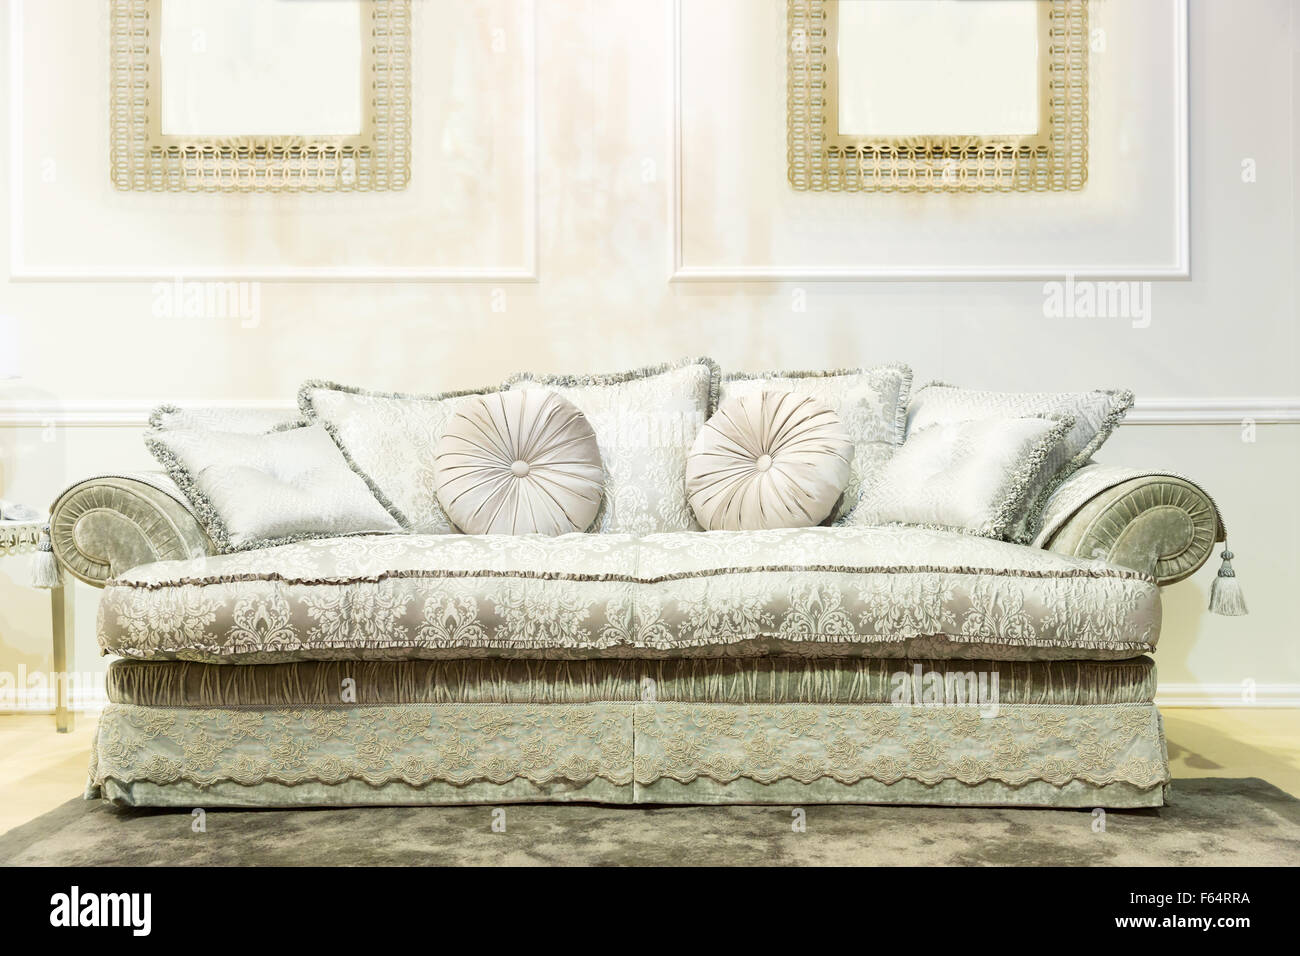 Admirable Luxury Interior With Nice Big White Sofa Stock Photo Pdpeps Interior Chair Design Pdpepsorg